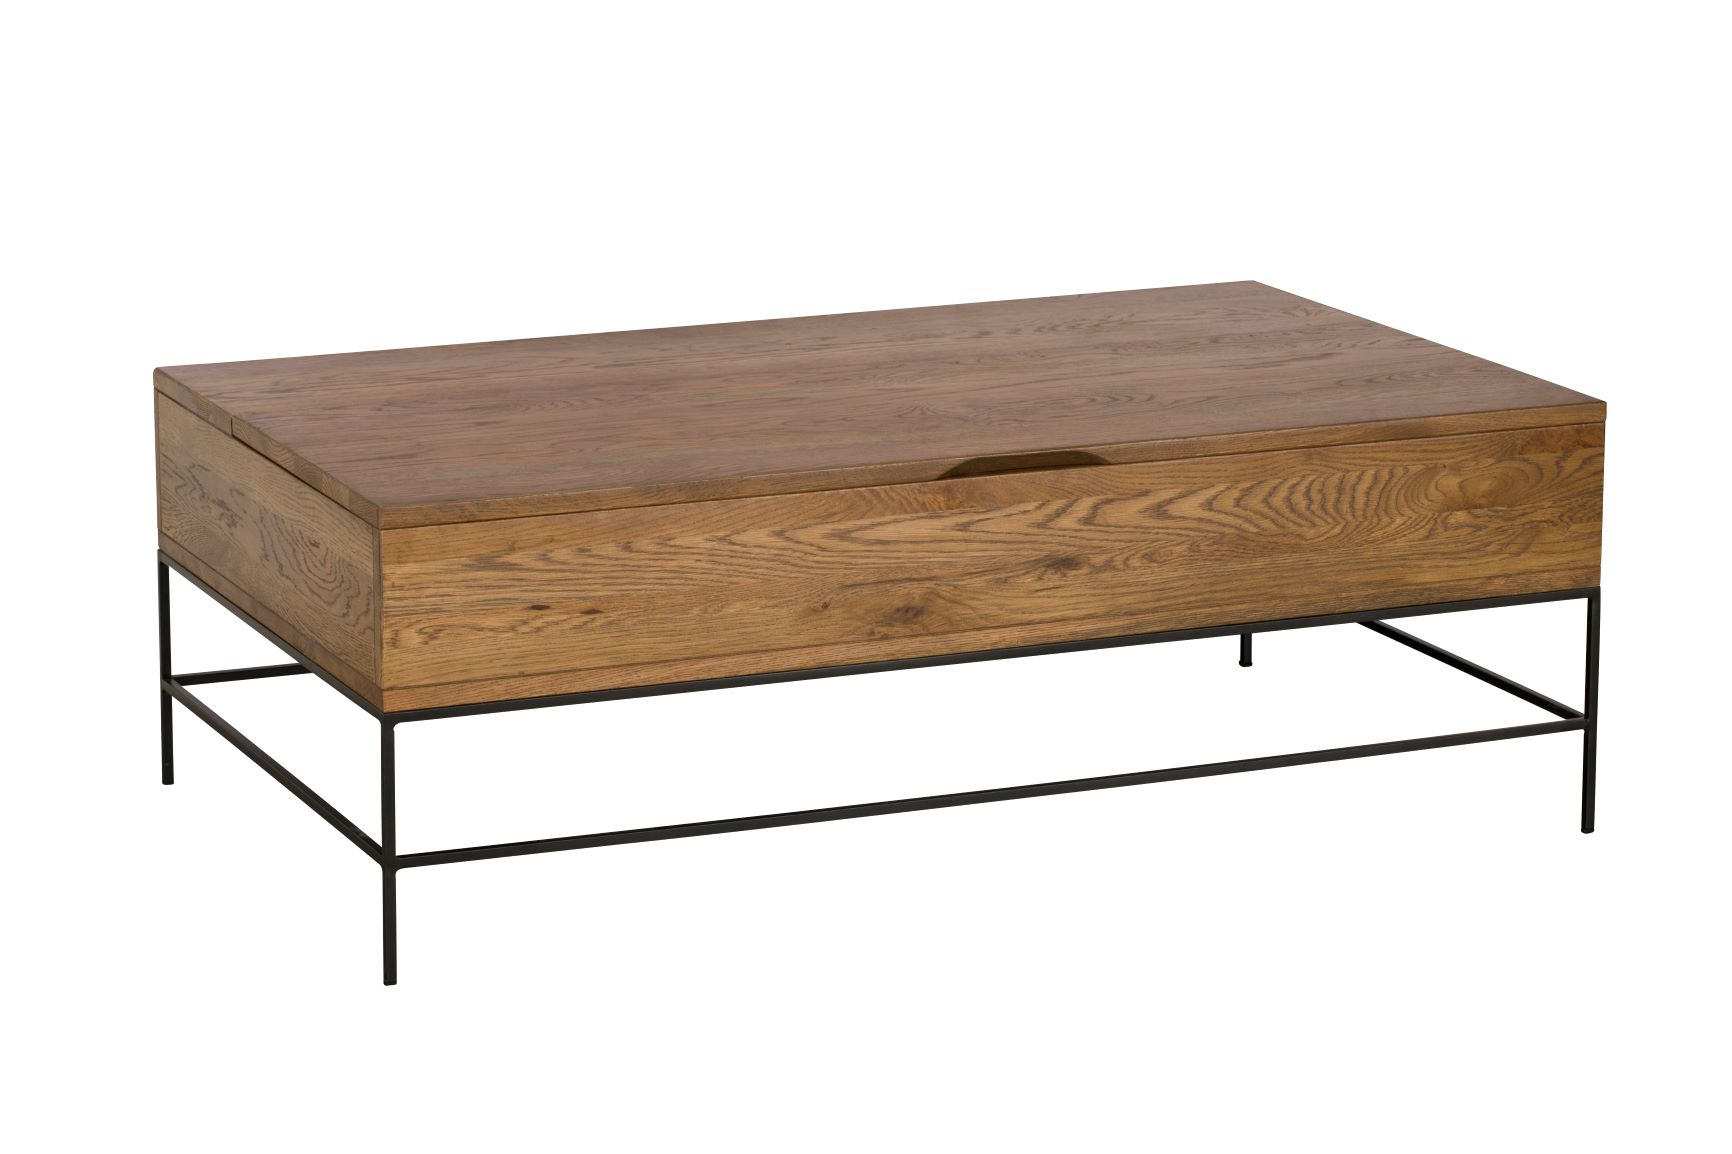 CARTER COFFEE TABLE - L122cm x D71cm x H42.5cm